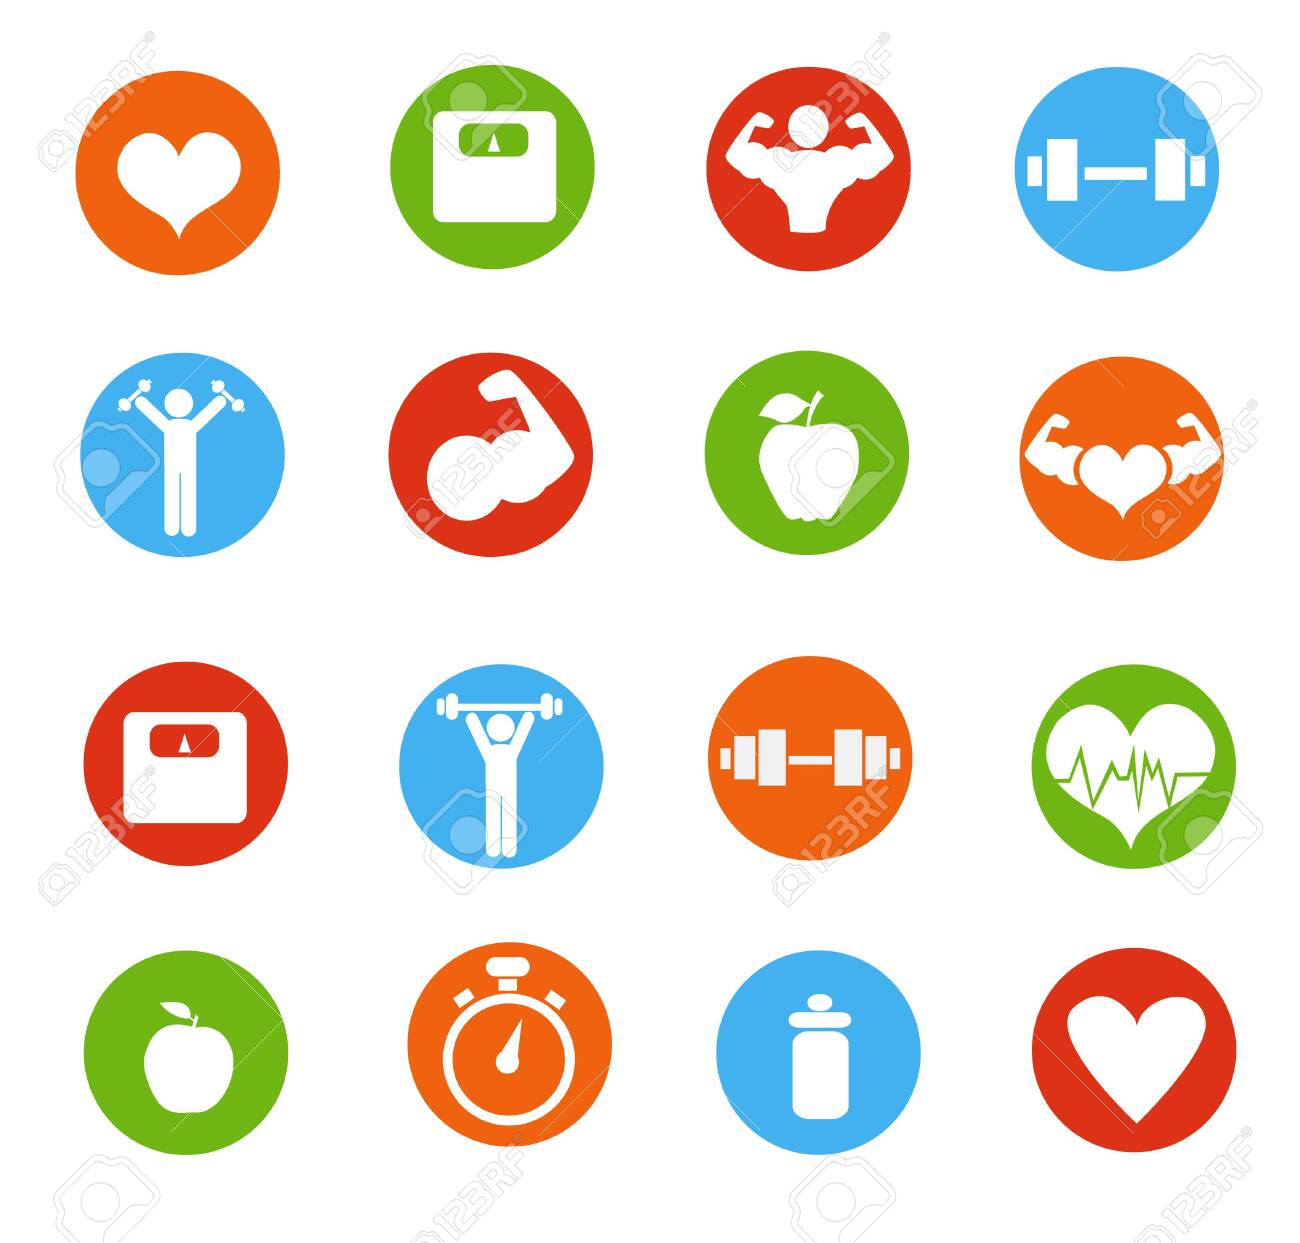 Fitness icons vector illustration - 129264854